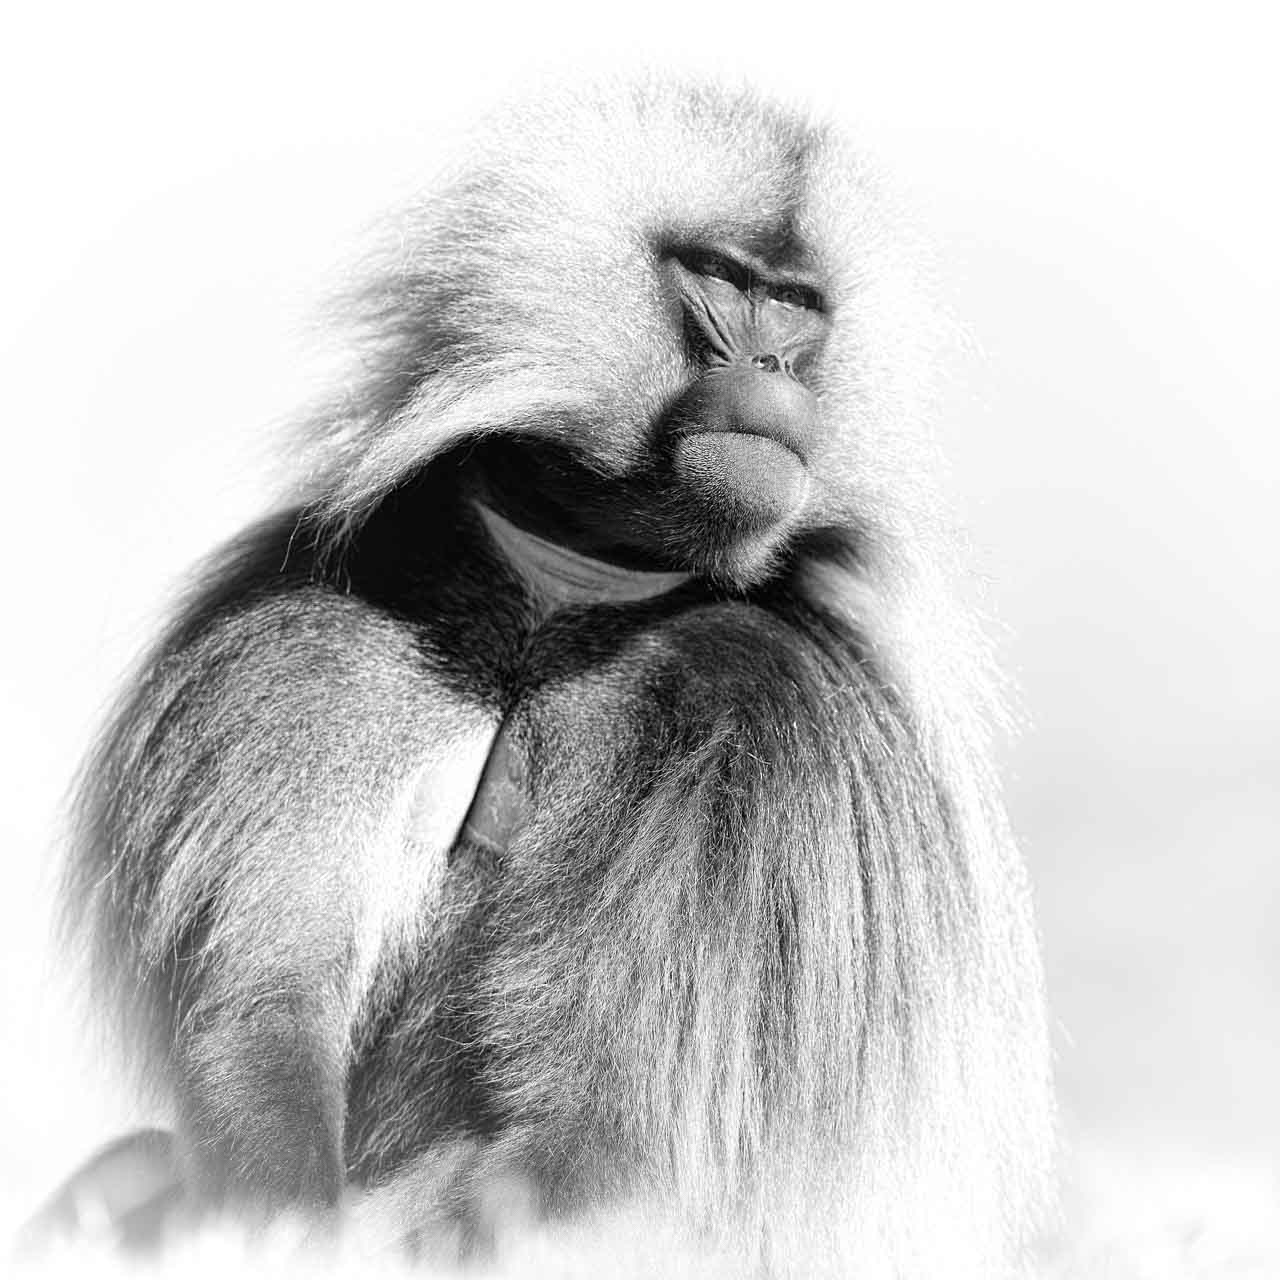 Artistic Photograph of a Male Gelada in the Highlands of Ethiopia.